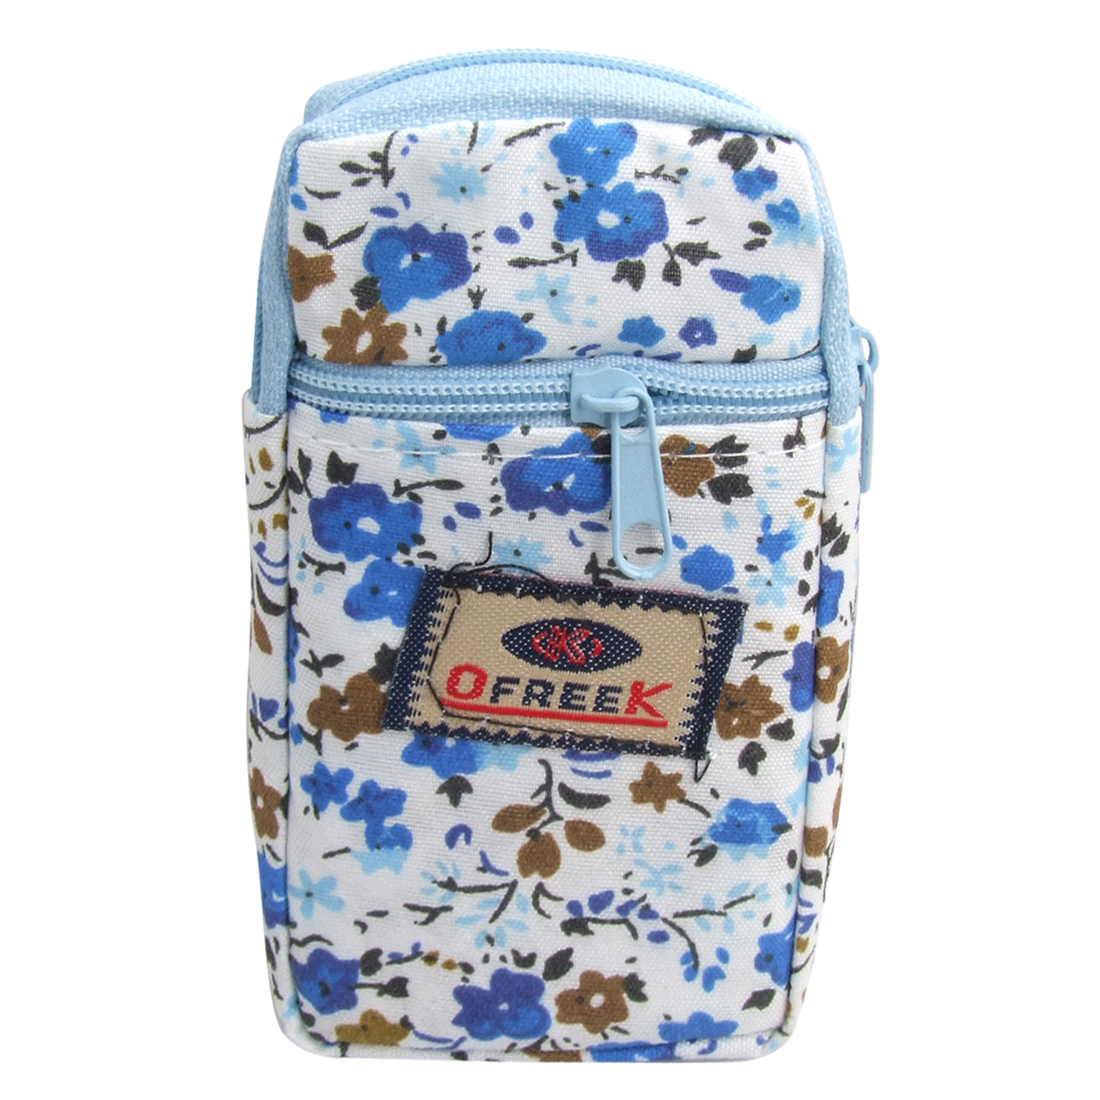 Blue Allover Floral Pattern Zip Closure Cellphone Holder Pouch Wrist Bag